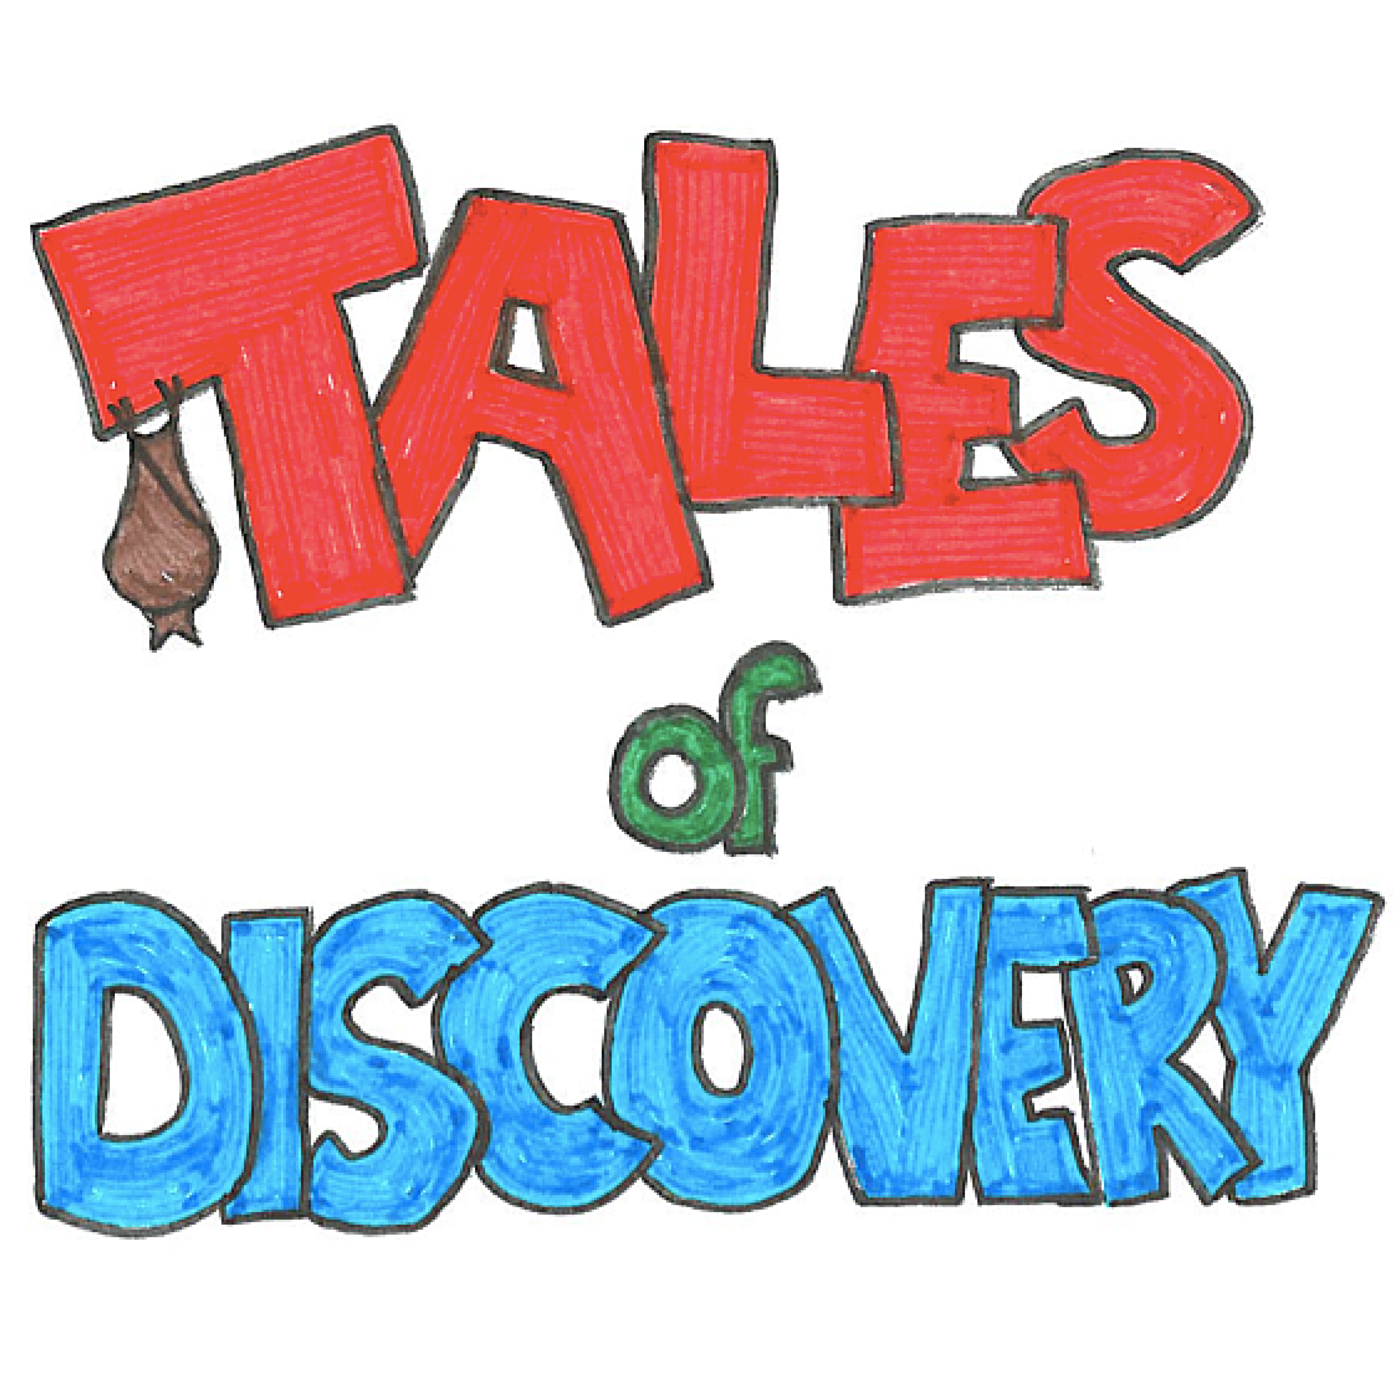 Tales of Discovery